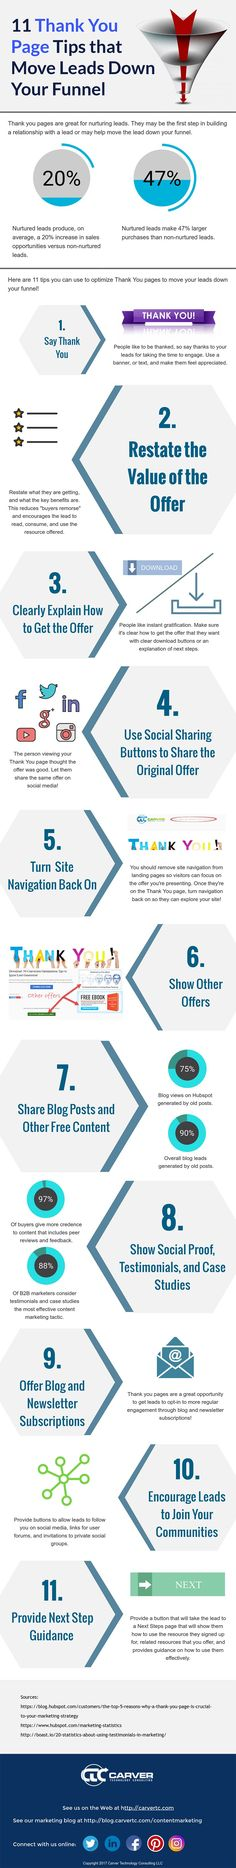 11 Thank You Page Tips That Move Leads Down Your Sales Funnel #Infographic #WebDesign